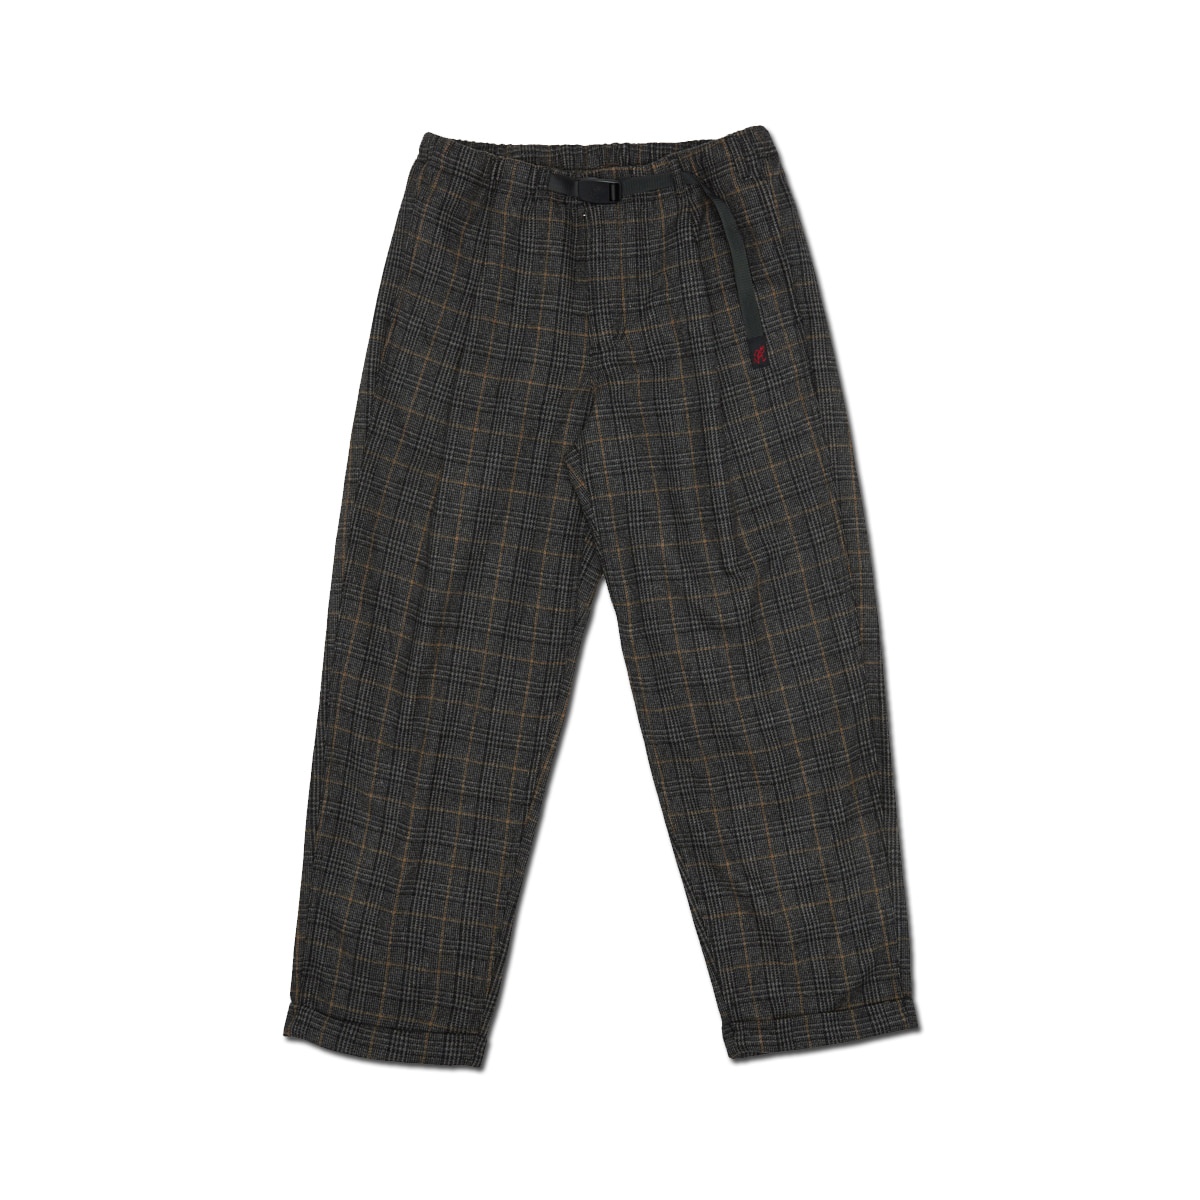 [GRAMICCI] WOOL BLEND TUCK TAPERED PANTS 'GLEN CHECK GREY'